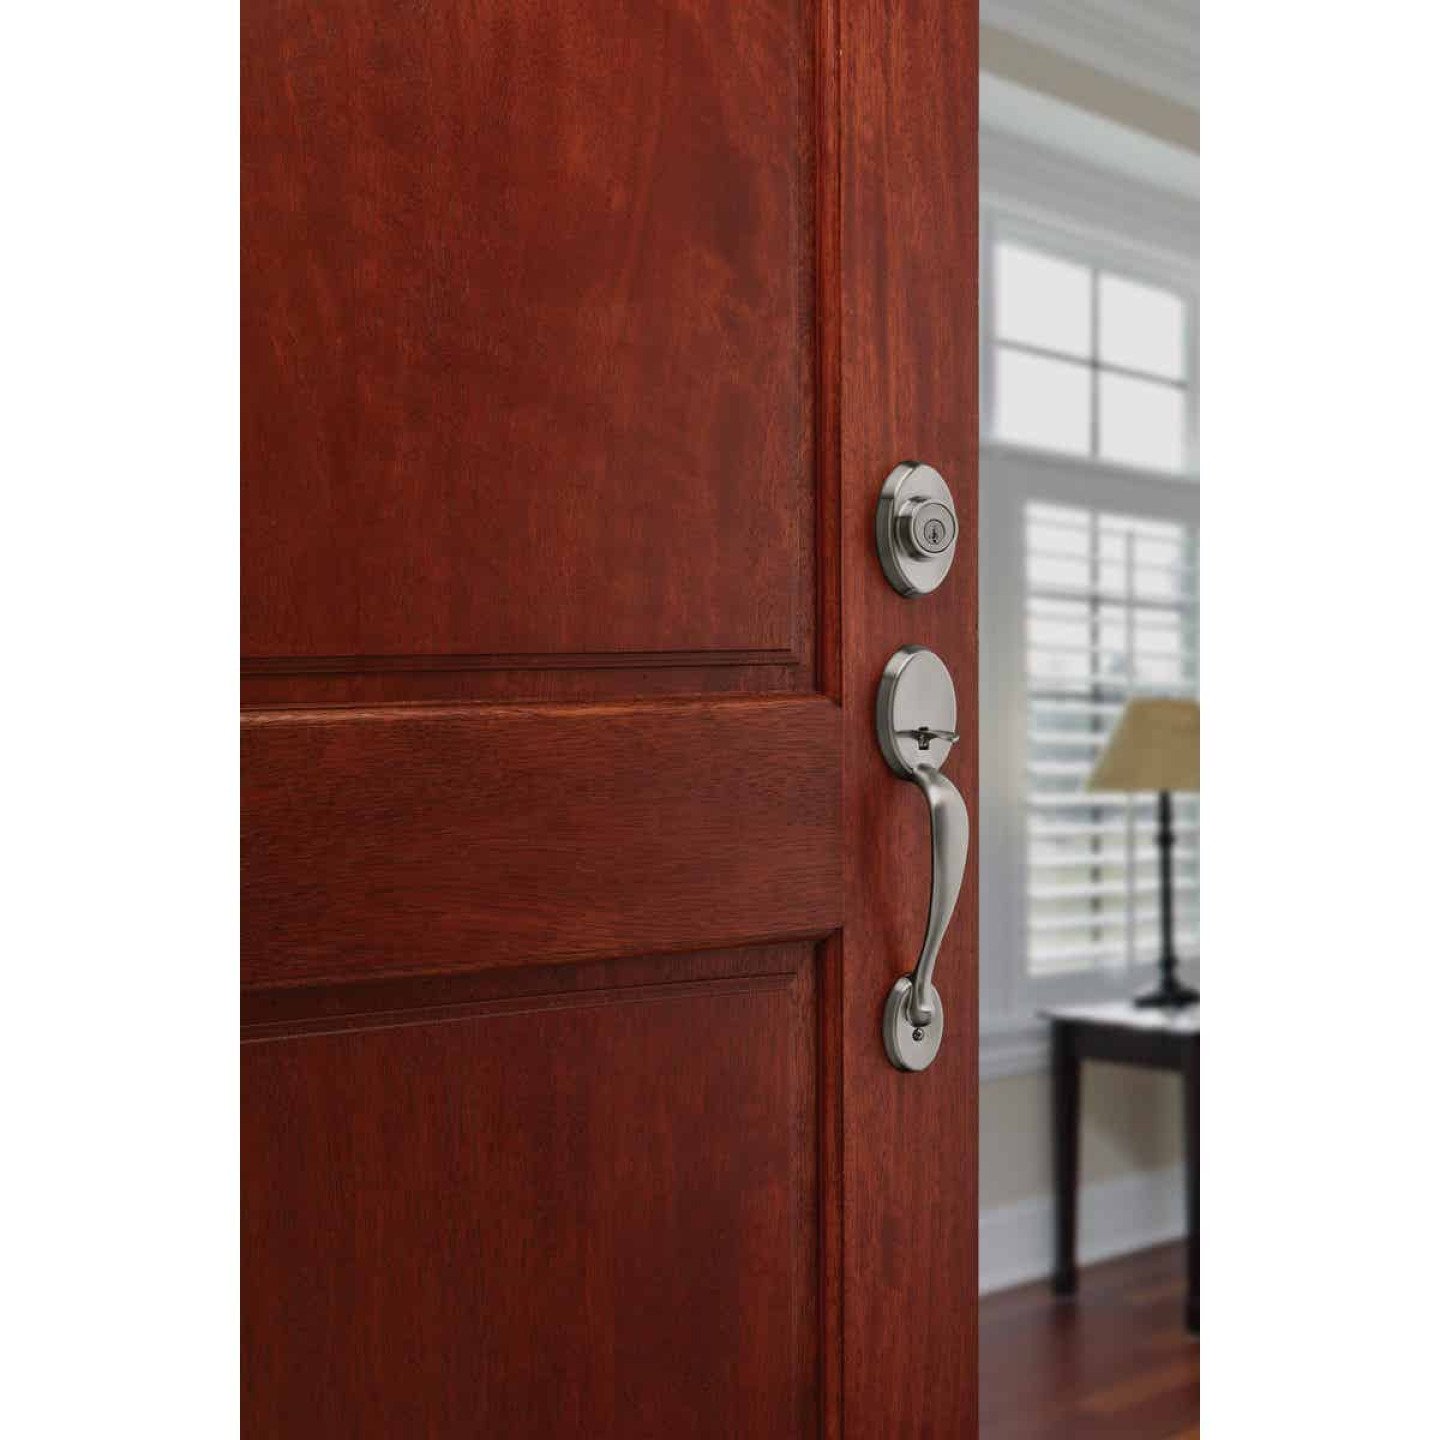 Kwikset Signature Series Chelsea Satin Nickel Entry Door Handleset with Smartkey & Cameron Knob Image 2